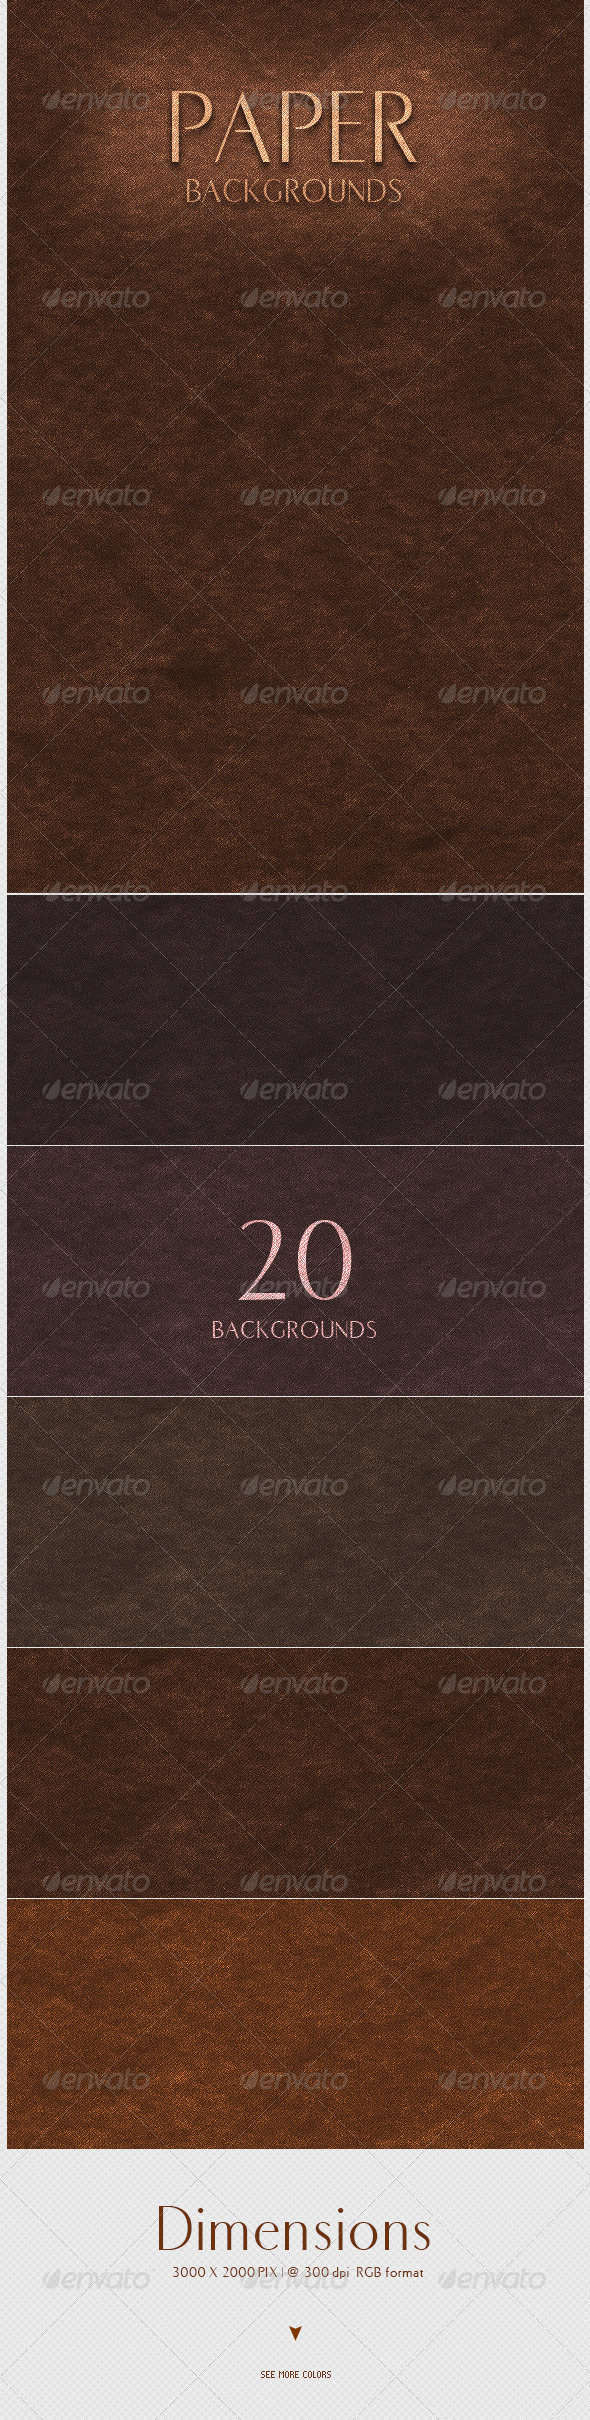 Paper Backgrounds - Patterns Backgrounds